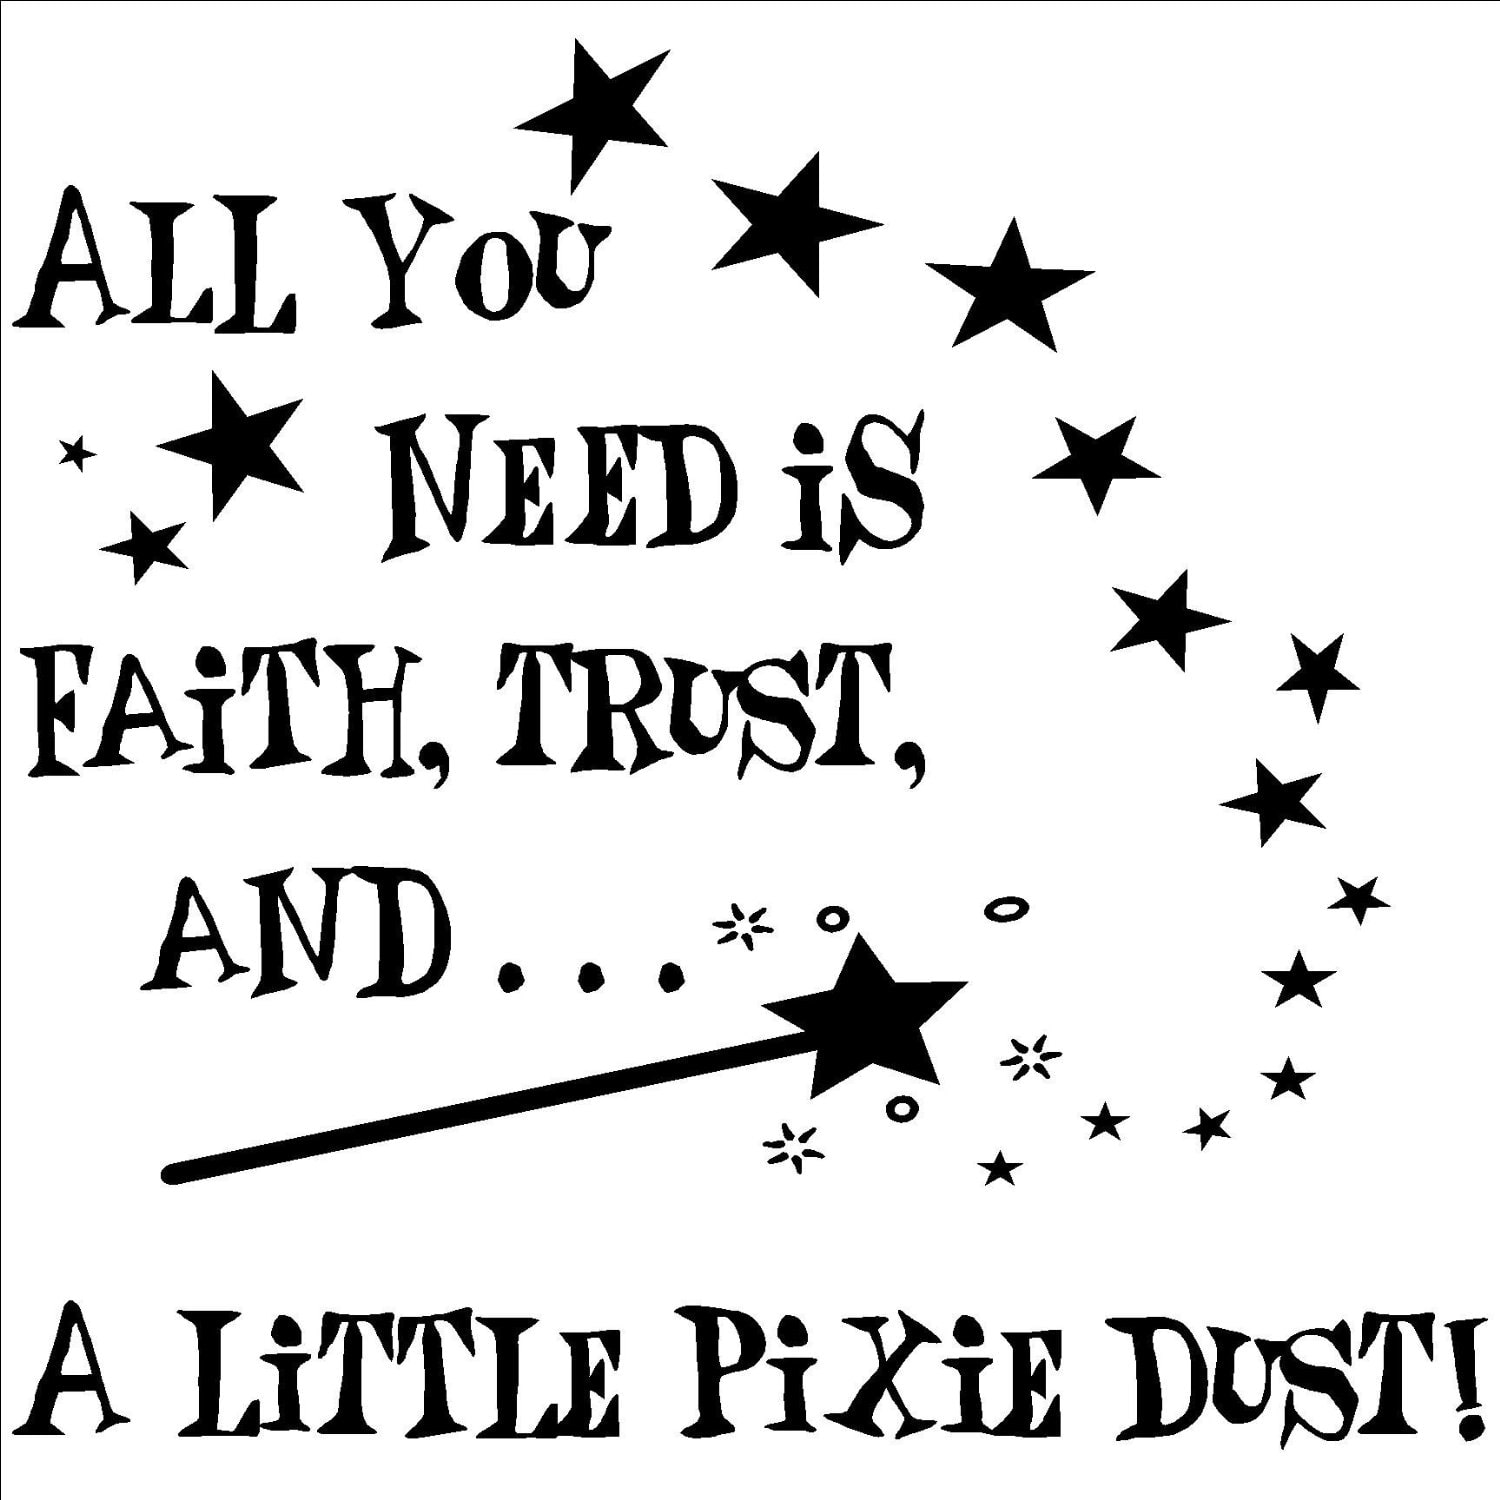 Vinyl Designs 'All You Need Is Faith, Trust, And A Little Pixie Dust' Vinyl Wall Art Lettering